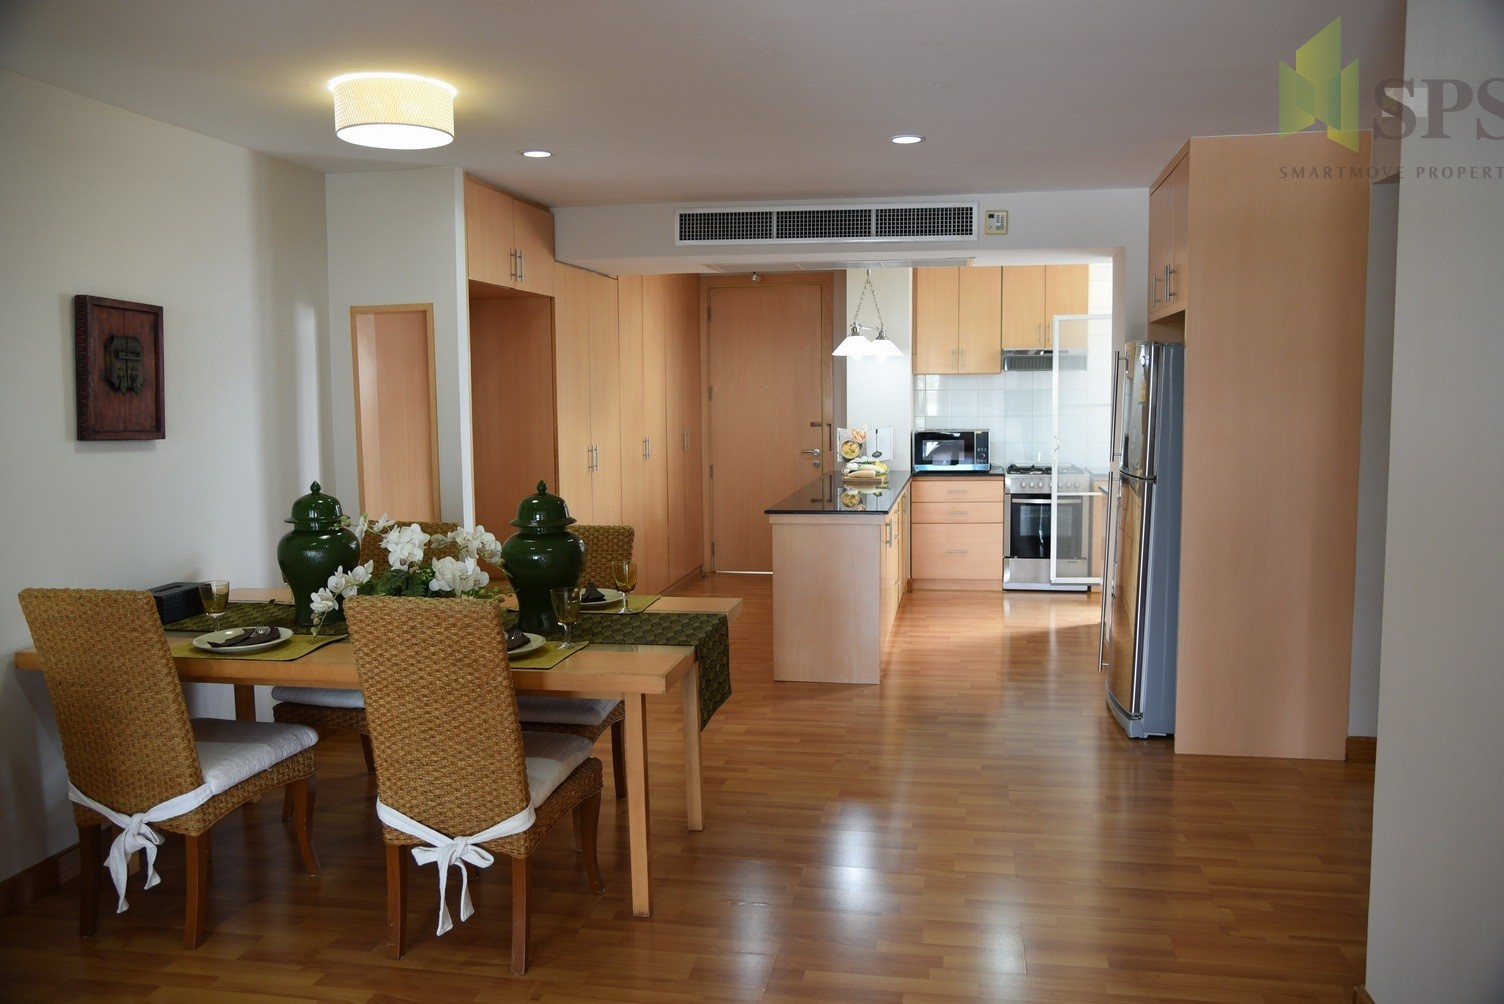 A s place pet friendly apartment 3 bedrooms for rent near bts asoke property id spstp935 for 3 bedroom pet friendly apartments for rent